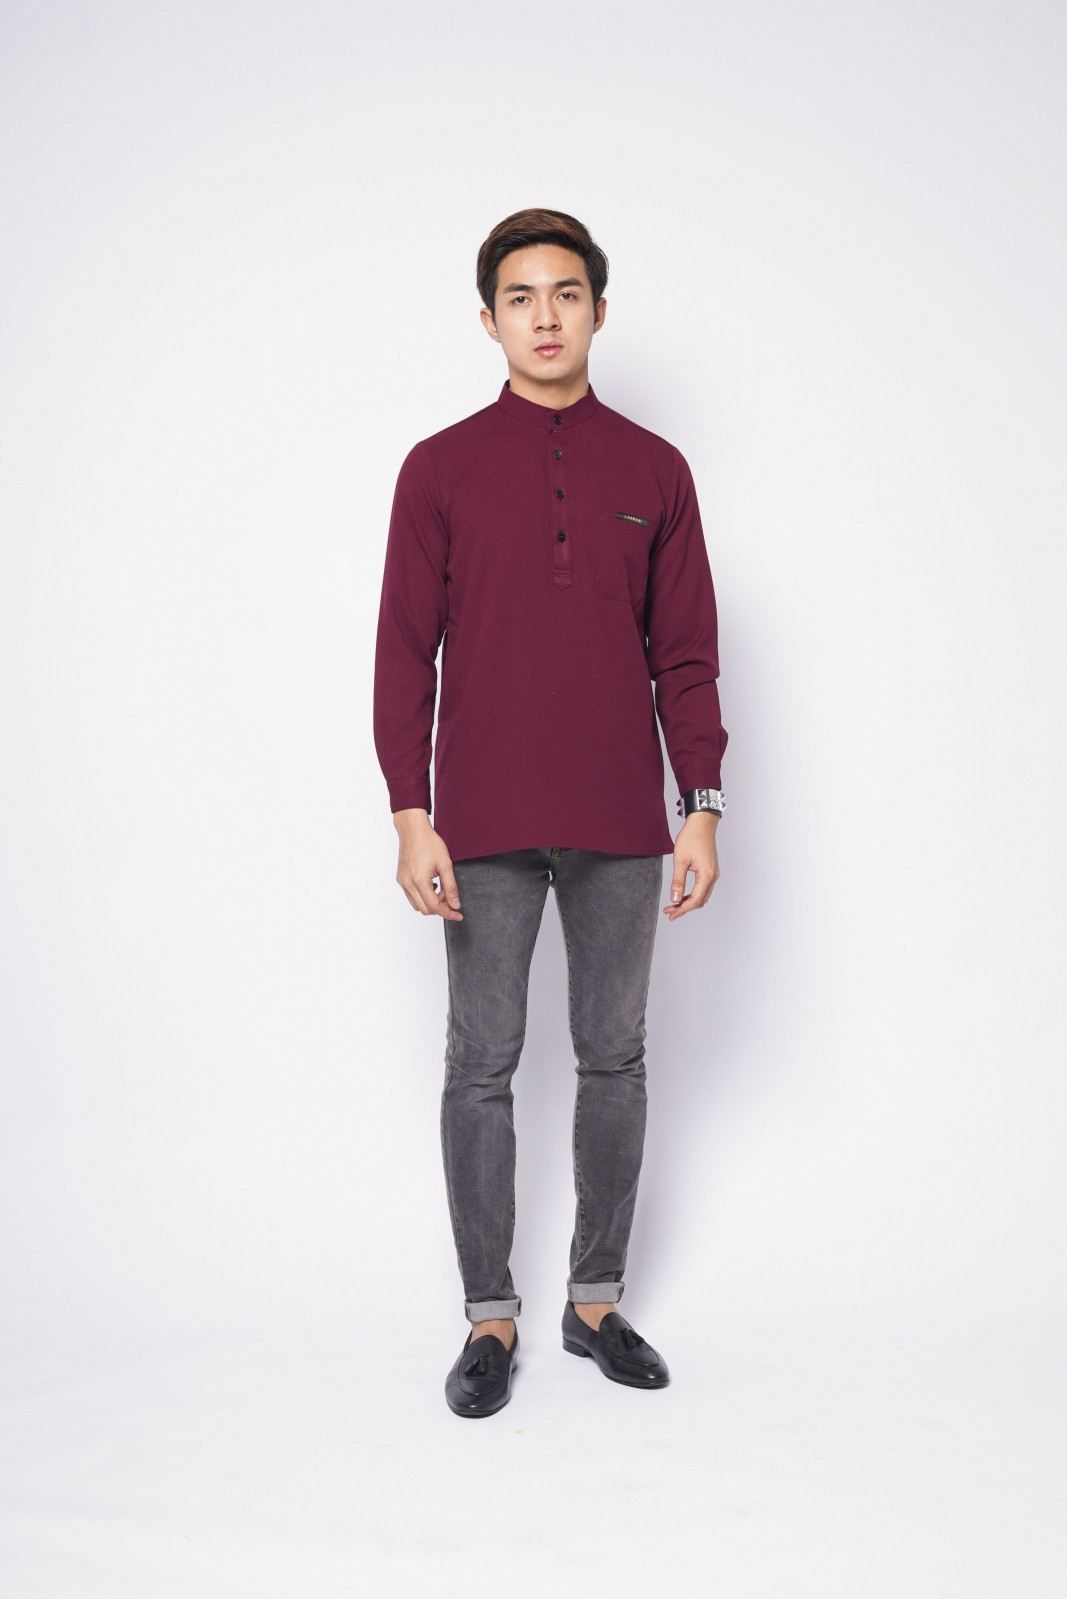 REMICO BUTTON - BURGUNDY MAROON